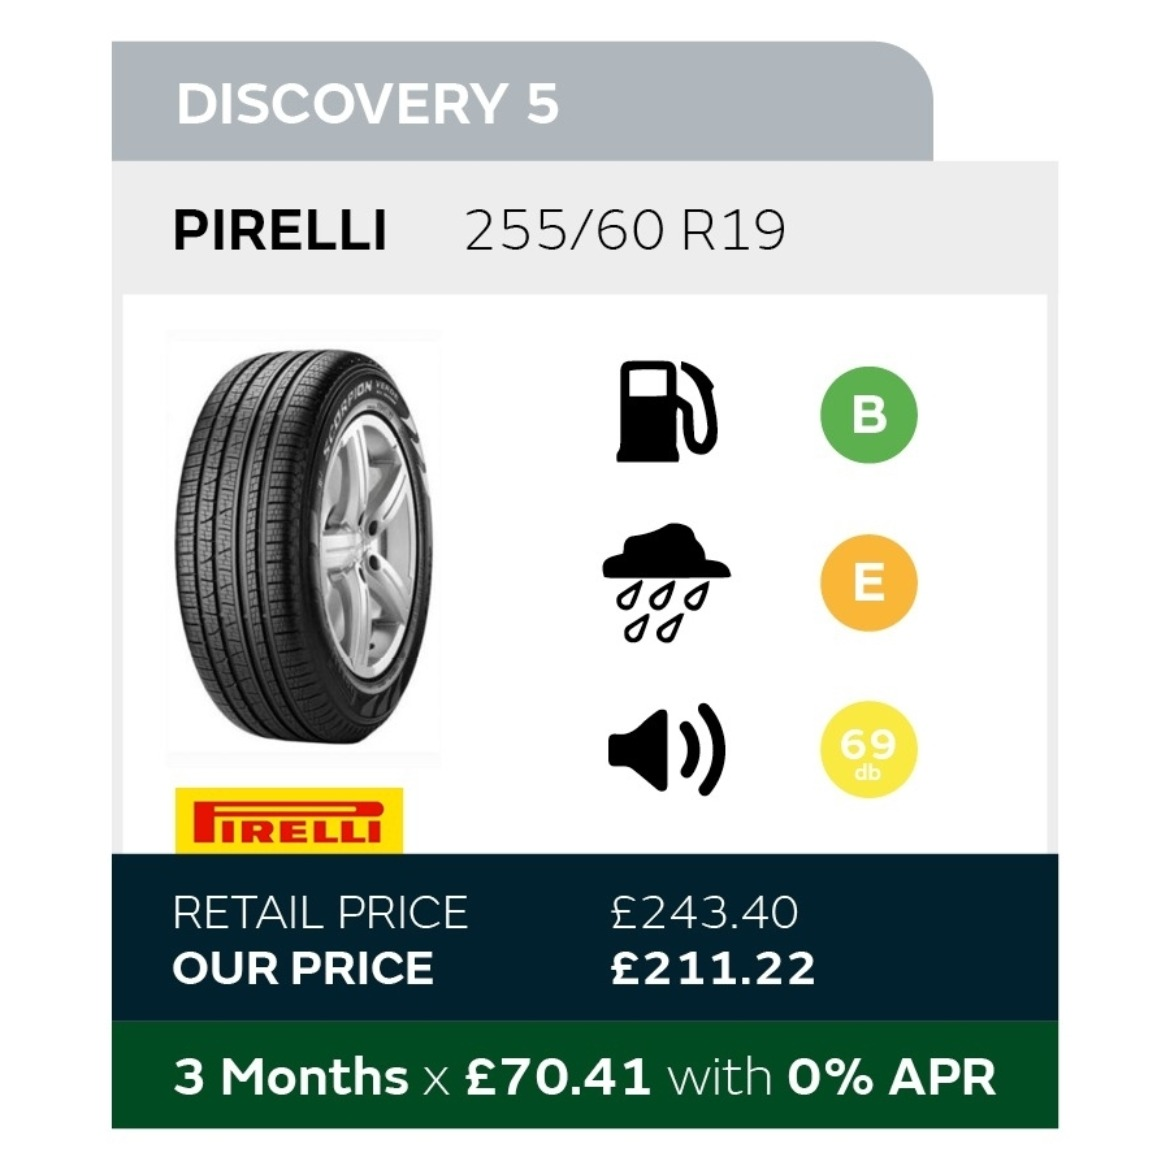 Discovery 5 Tyre Offer